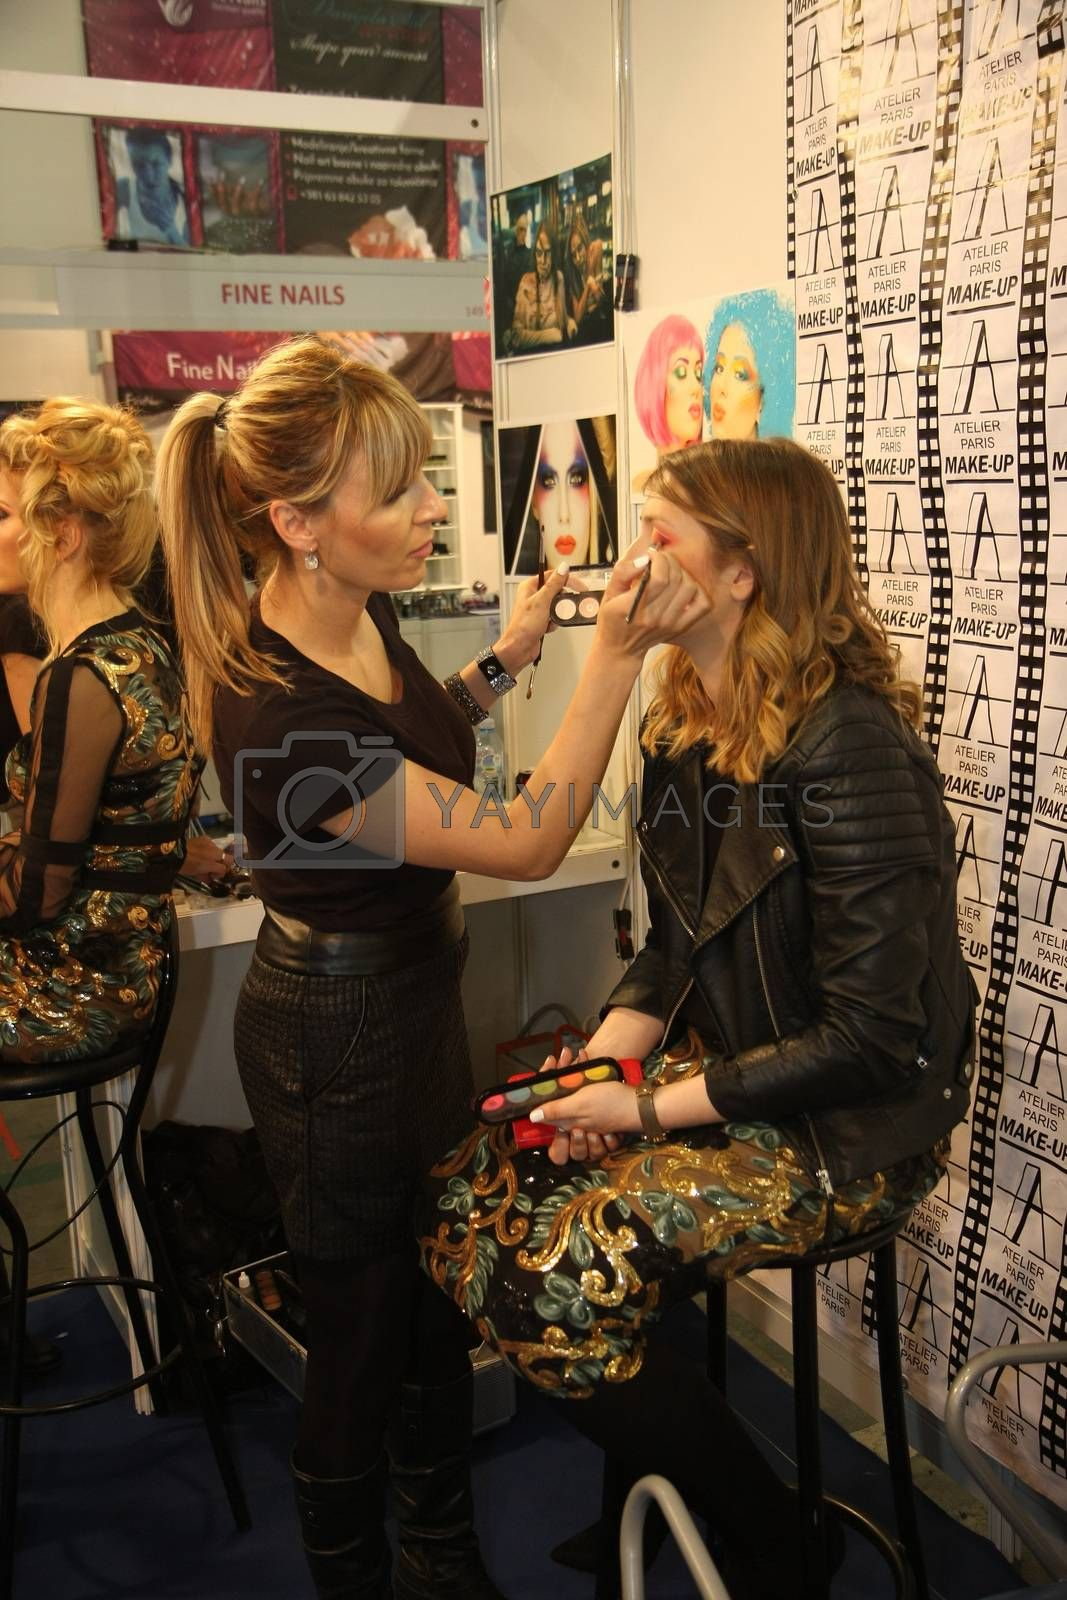 Makeup at 27th international fair and congress of cosmetics,The touch of Paris, 27th and 28th April 2016. Belgrade,Serbia